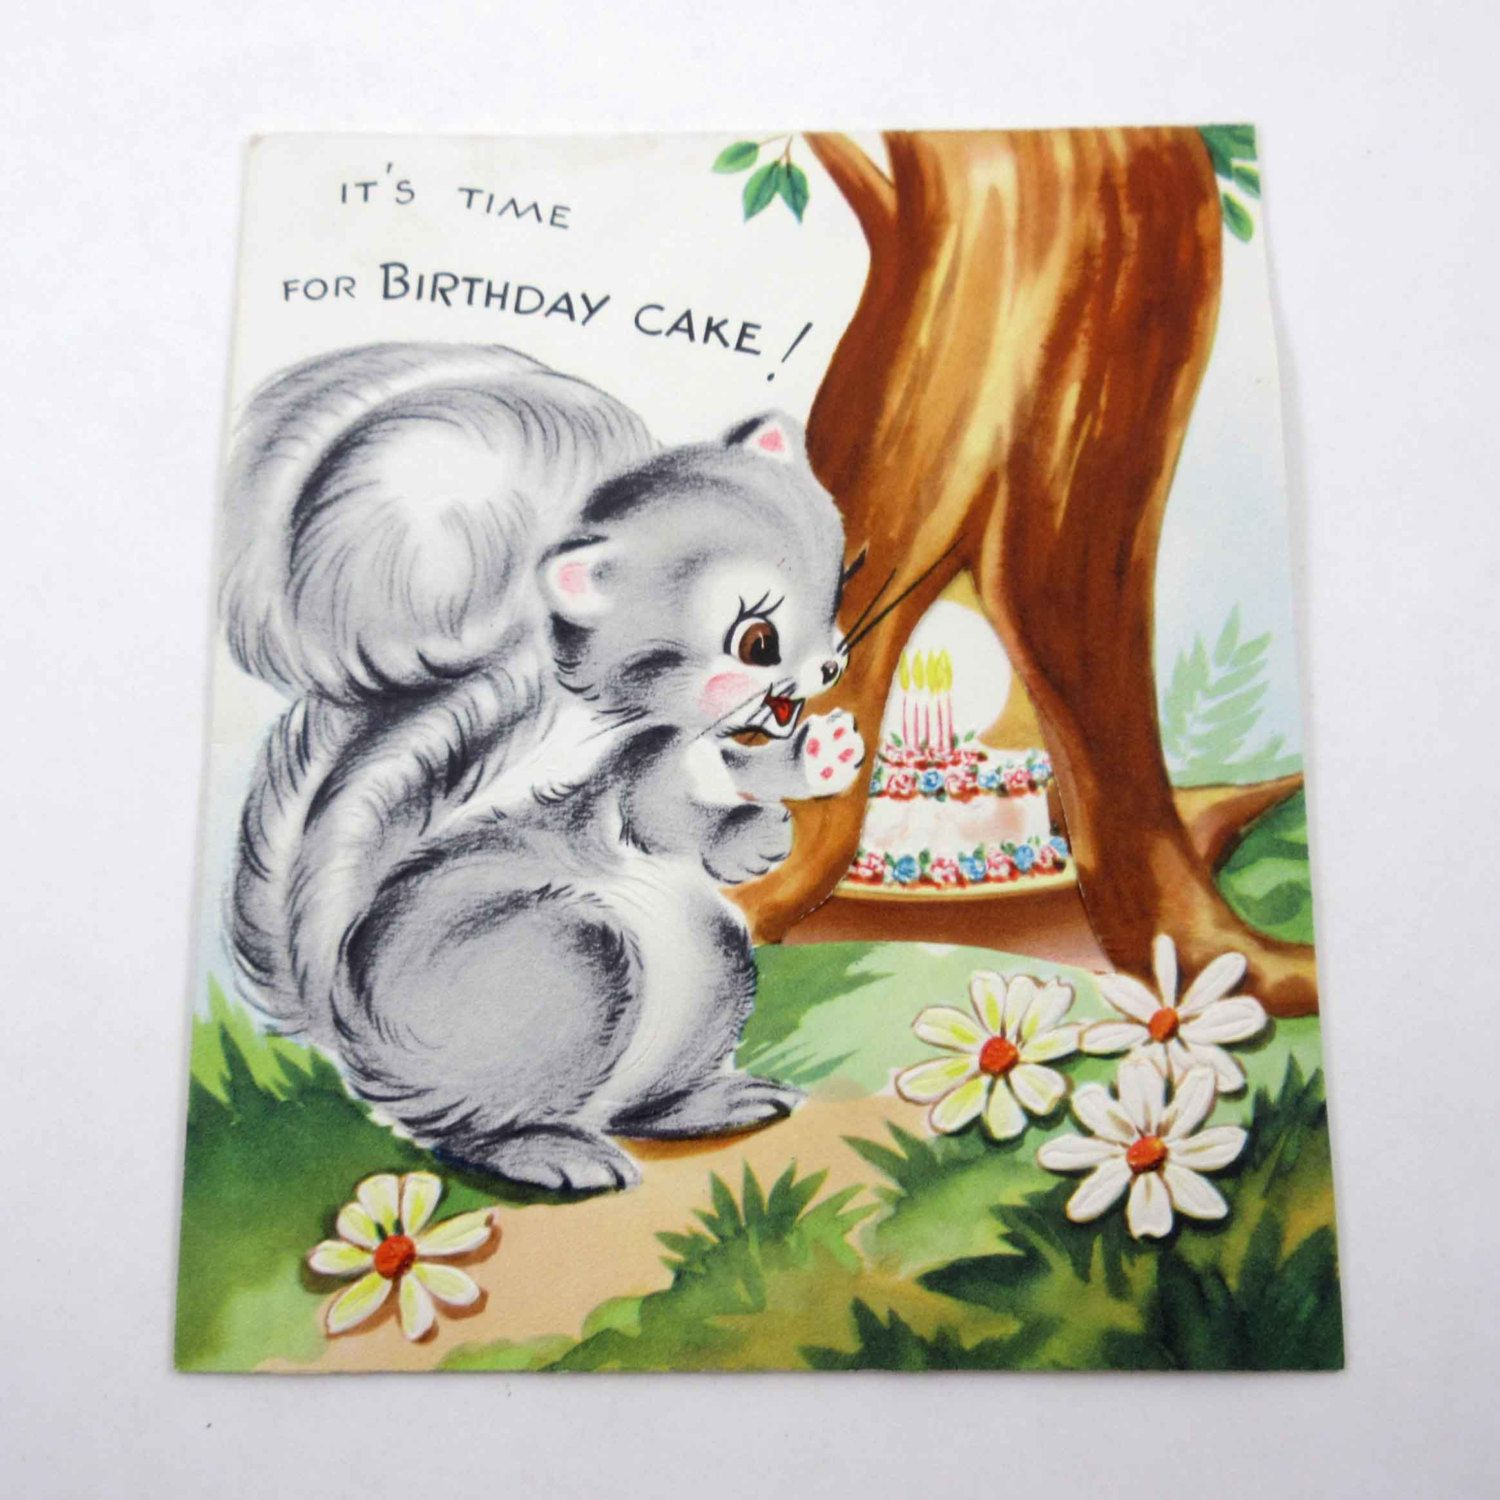 Vintage Novelty Birthday Greeting Card With A Squirrel And Etsy Vintage Birthday Cards Birthday Greeting Cards Card Making Birthday